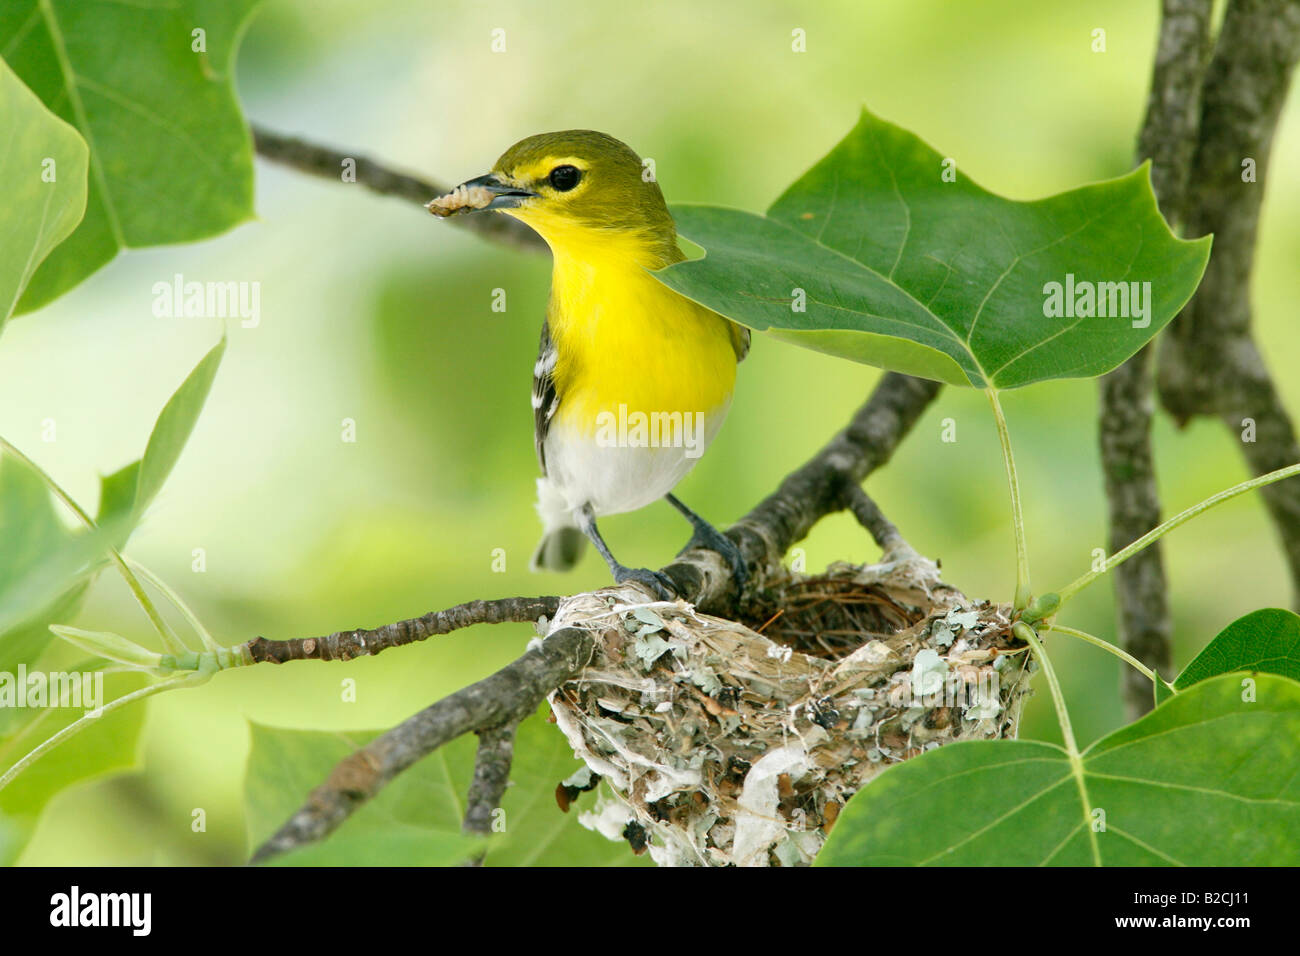 Yellow throated Vireo at Nest in Tulip Tree - Stock Image